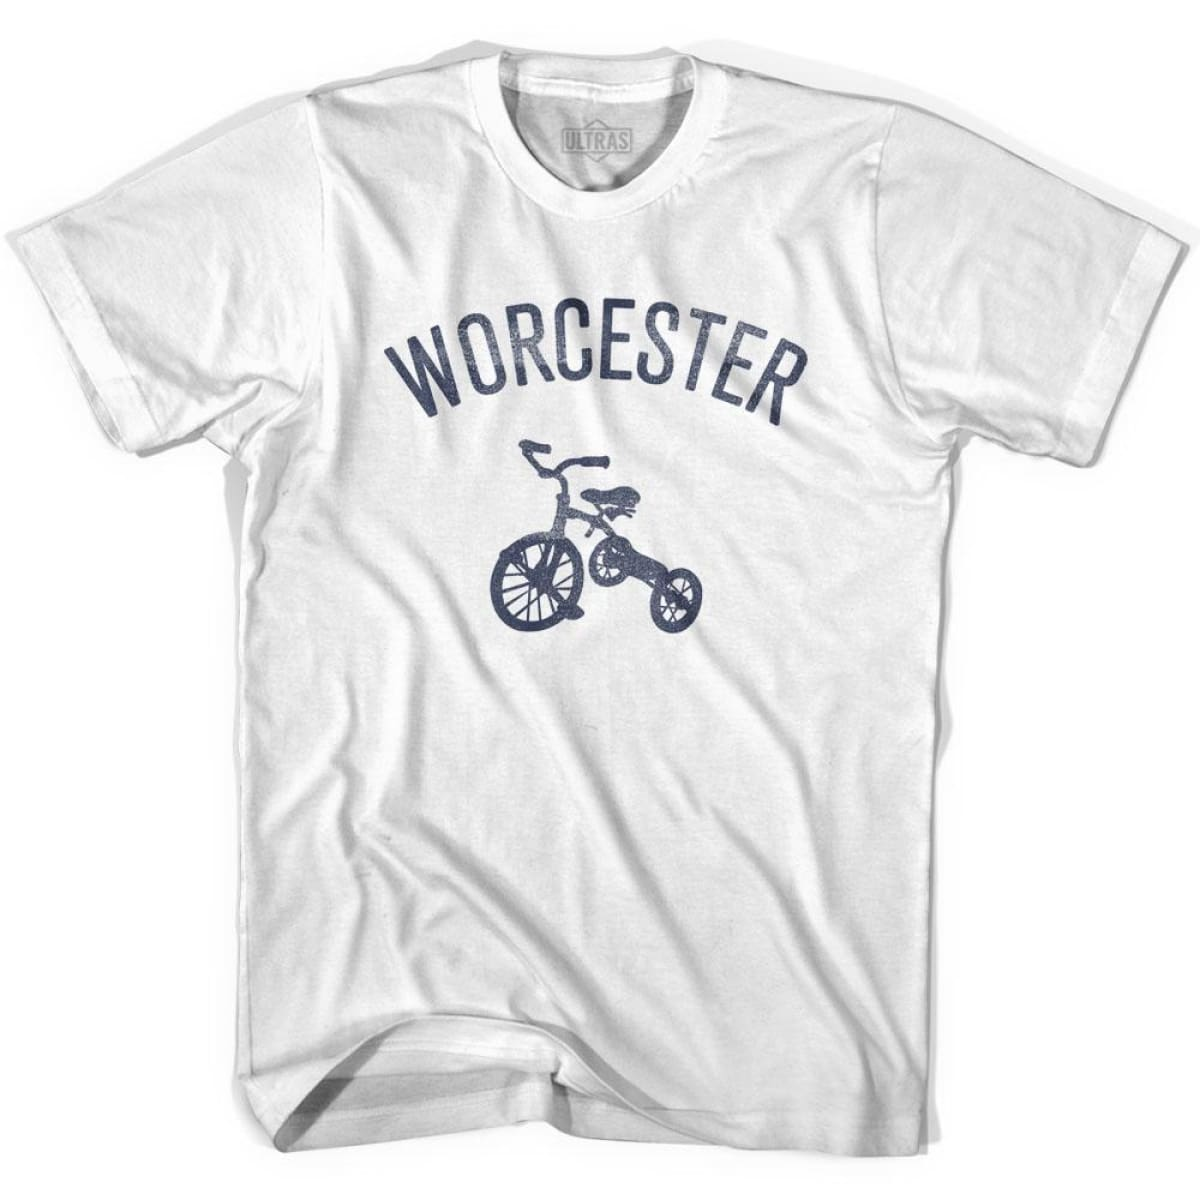 Worcester City Tricycle Womens Cotton T-shirt - Tricycle City